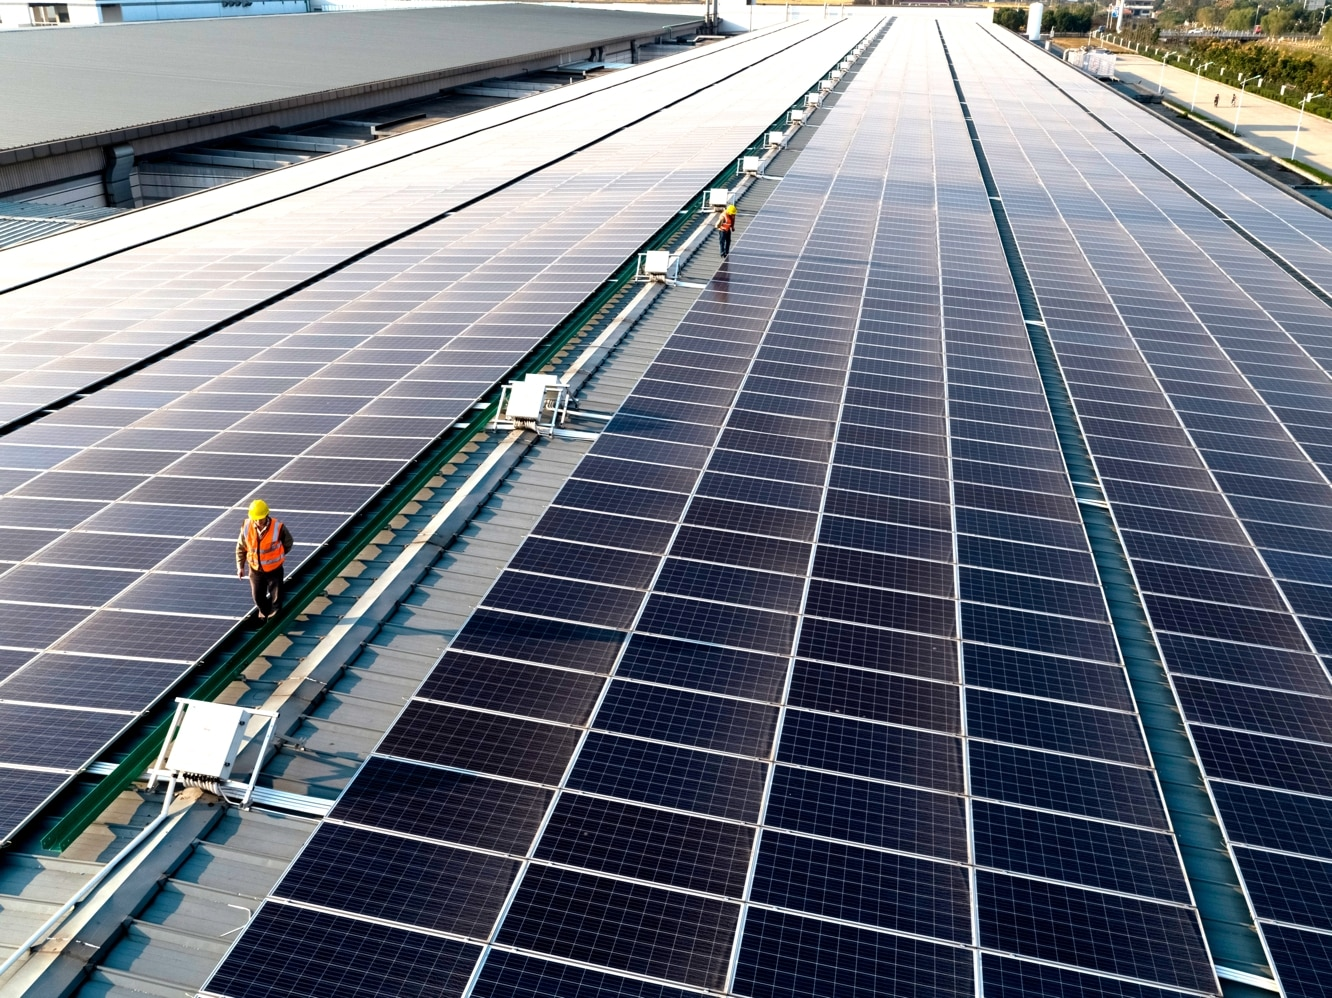 Apple joins with suppliers to create China Clean Energy Fund